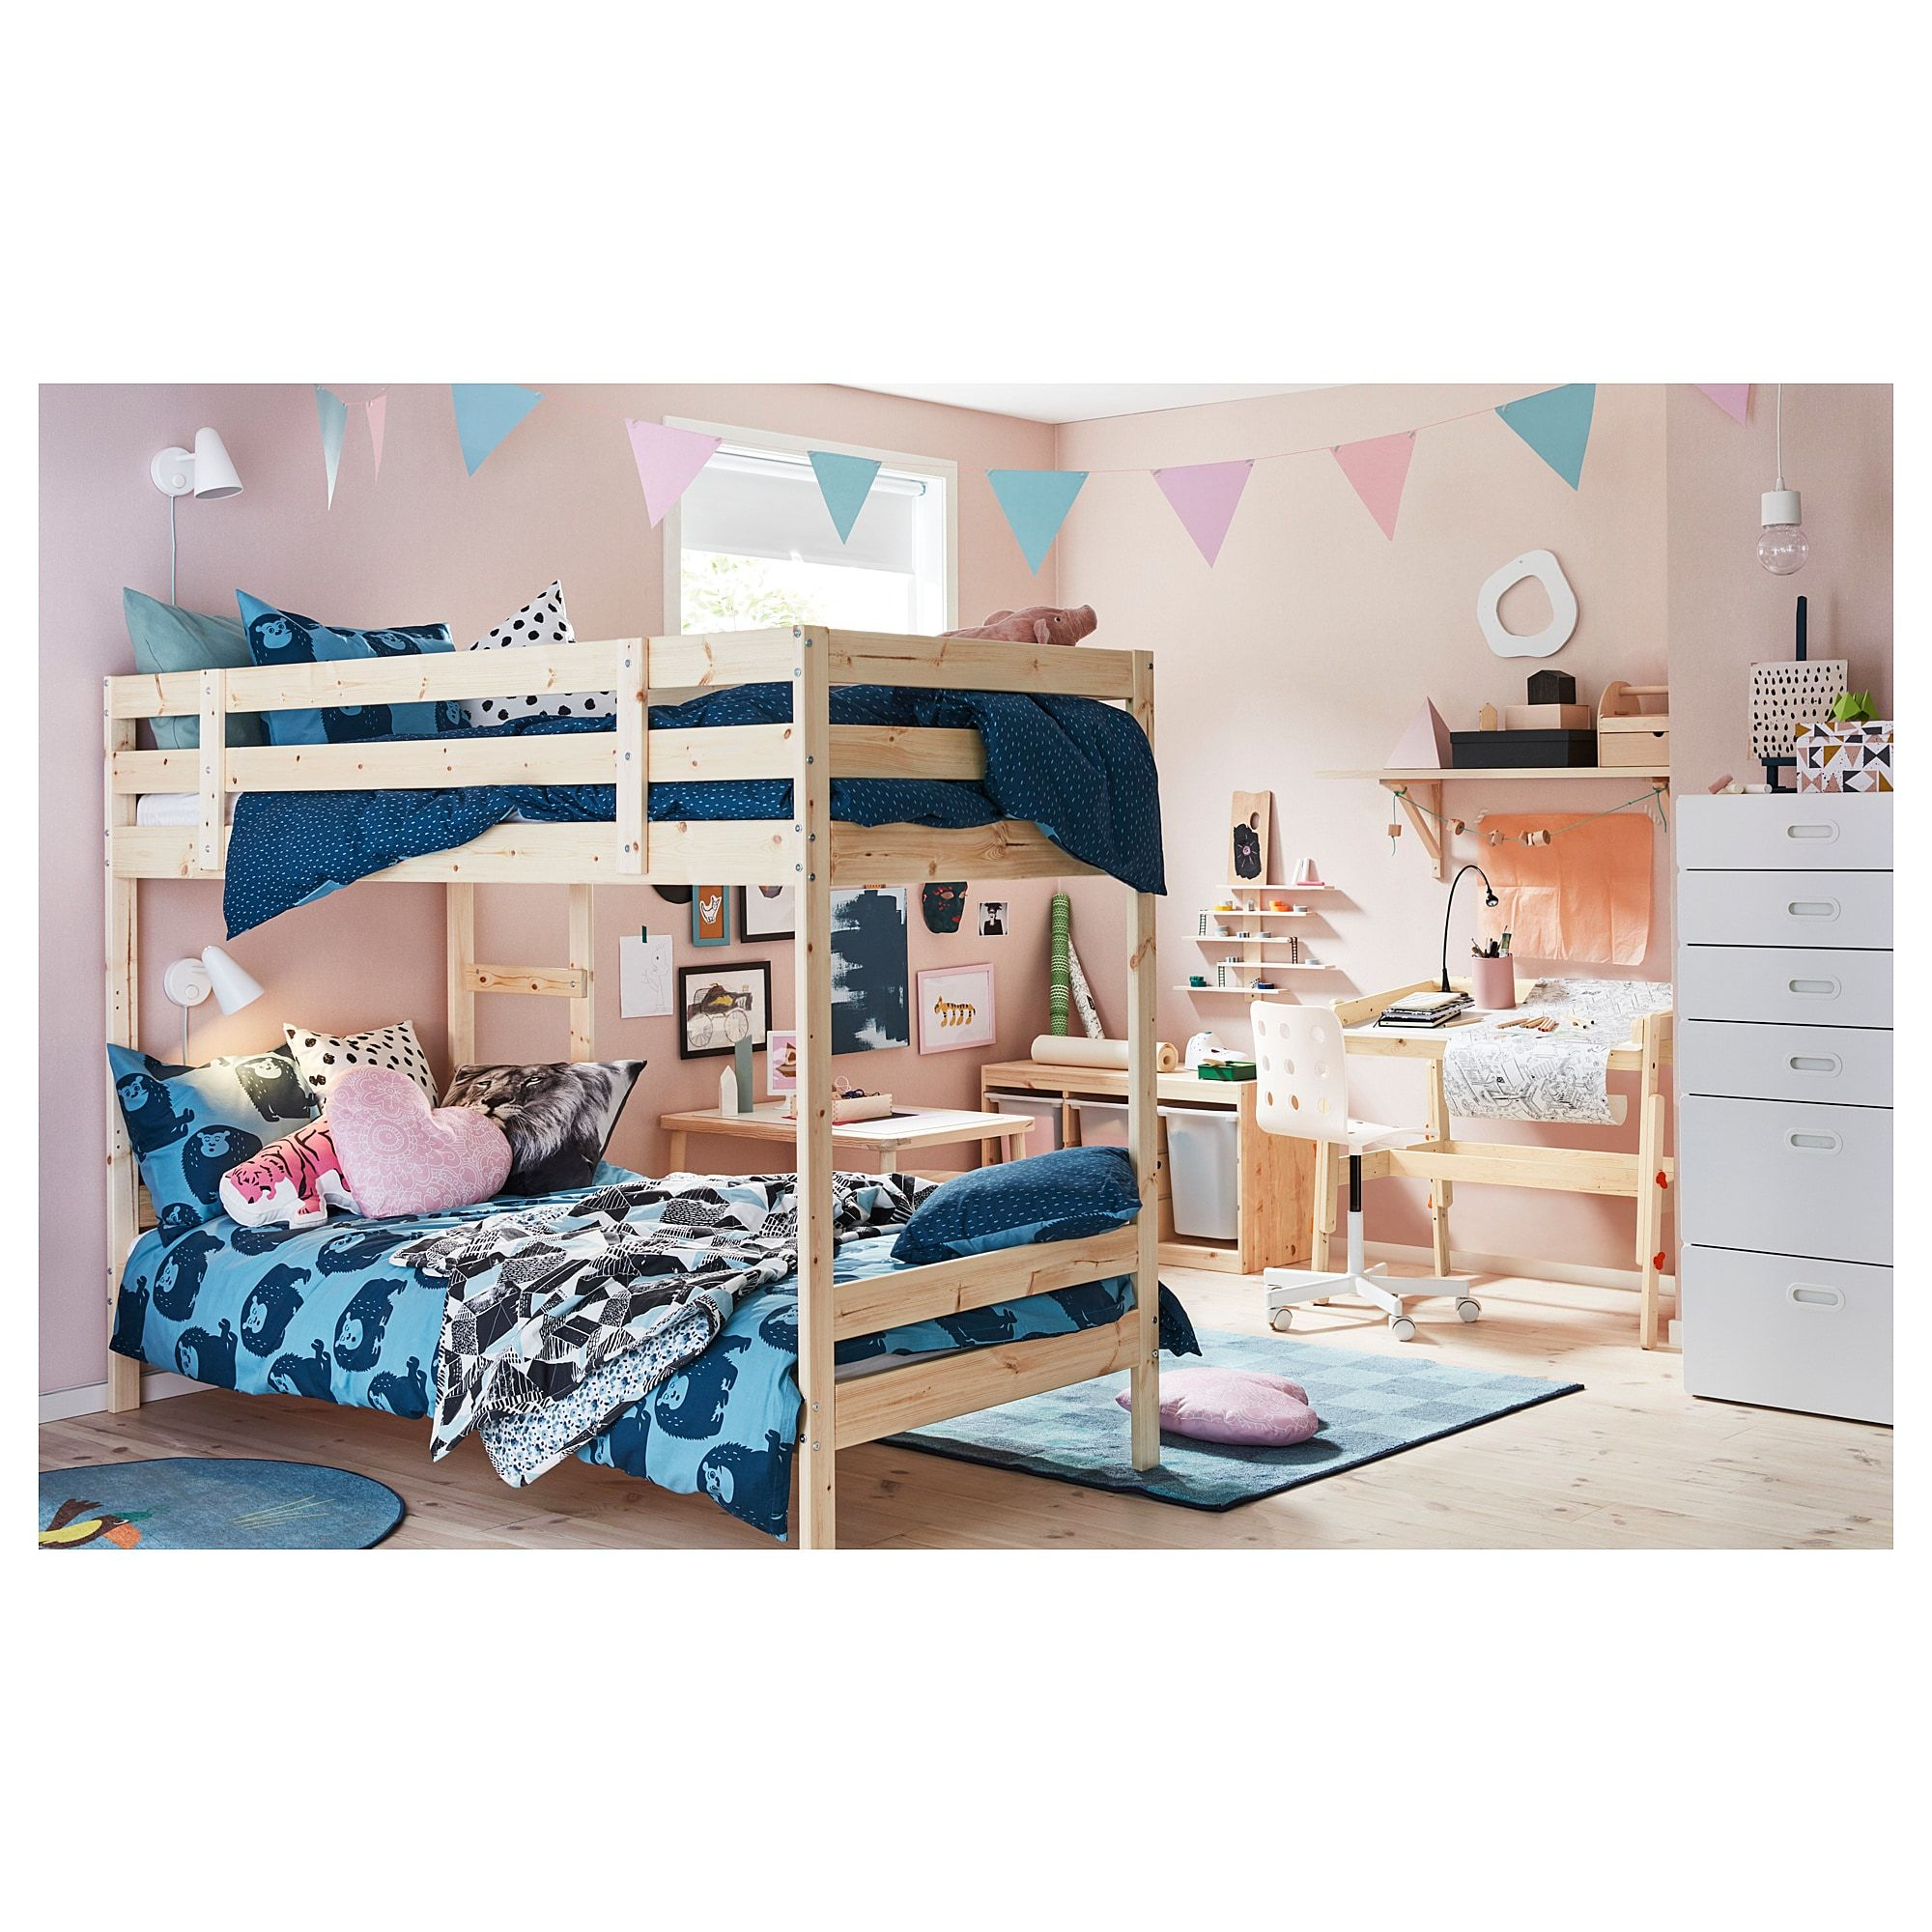 Ikea Bunk Bed Australia Ikea Mydal Bunk Bed Frame Pine In 2019 The Boys Room Bed